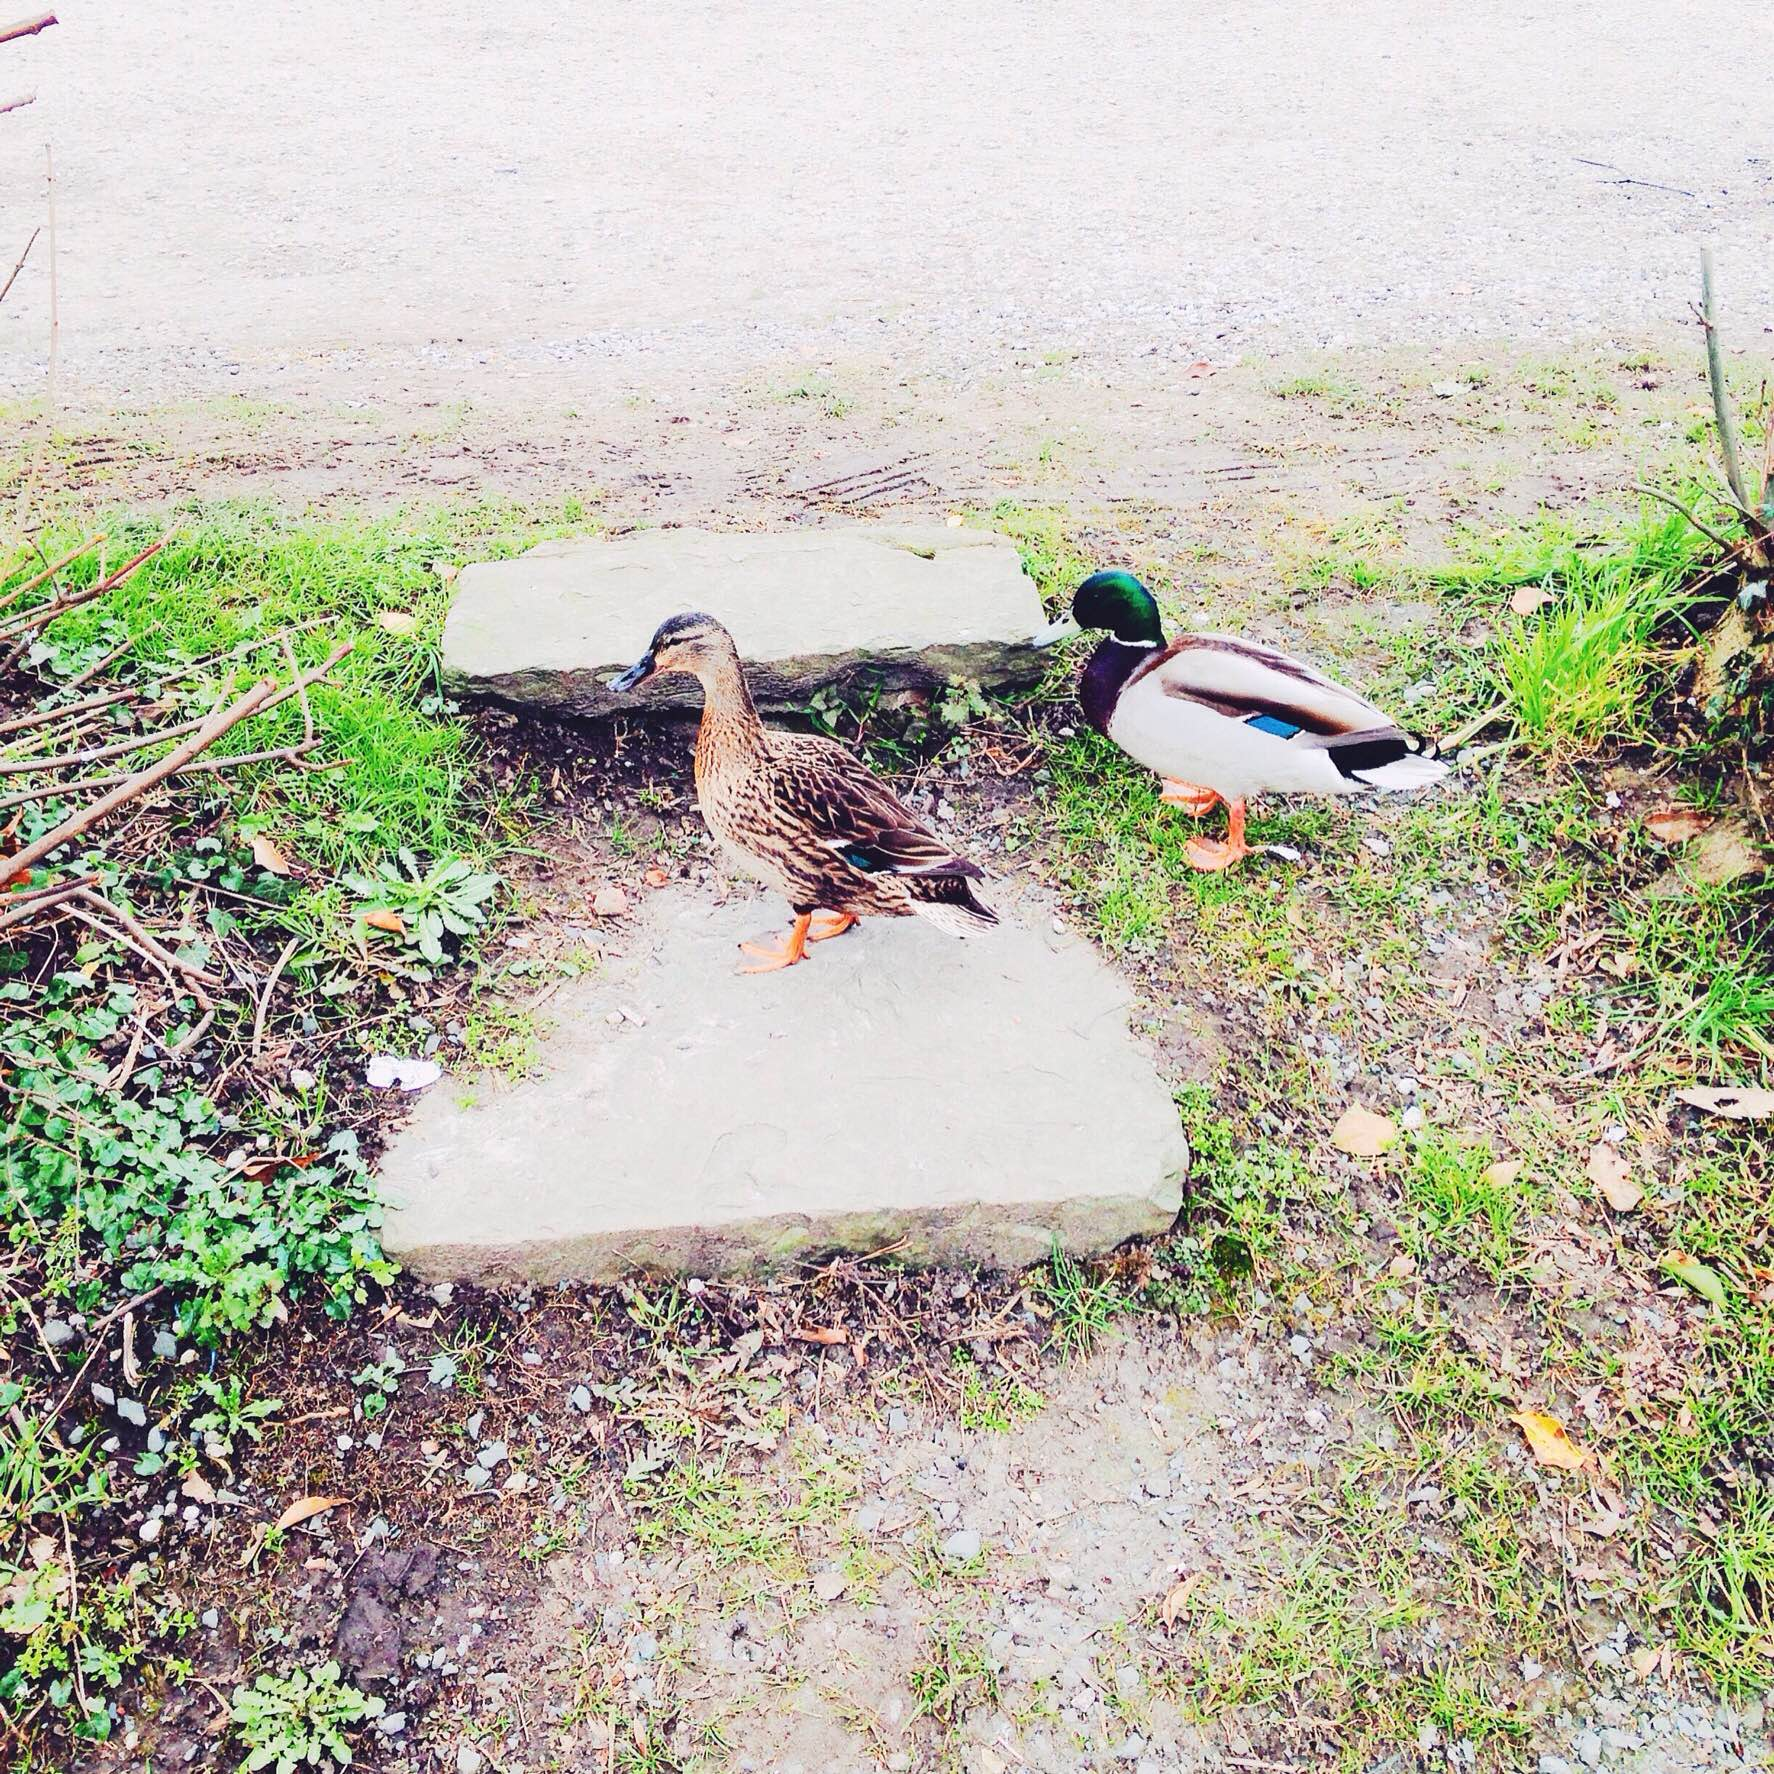 Ducks wandering by the canal